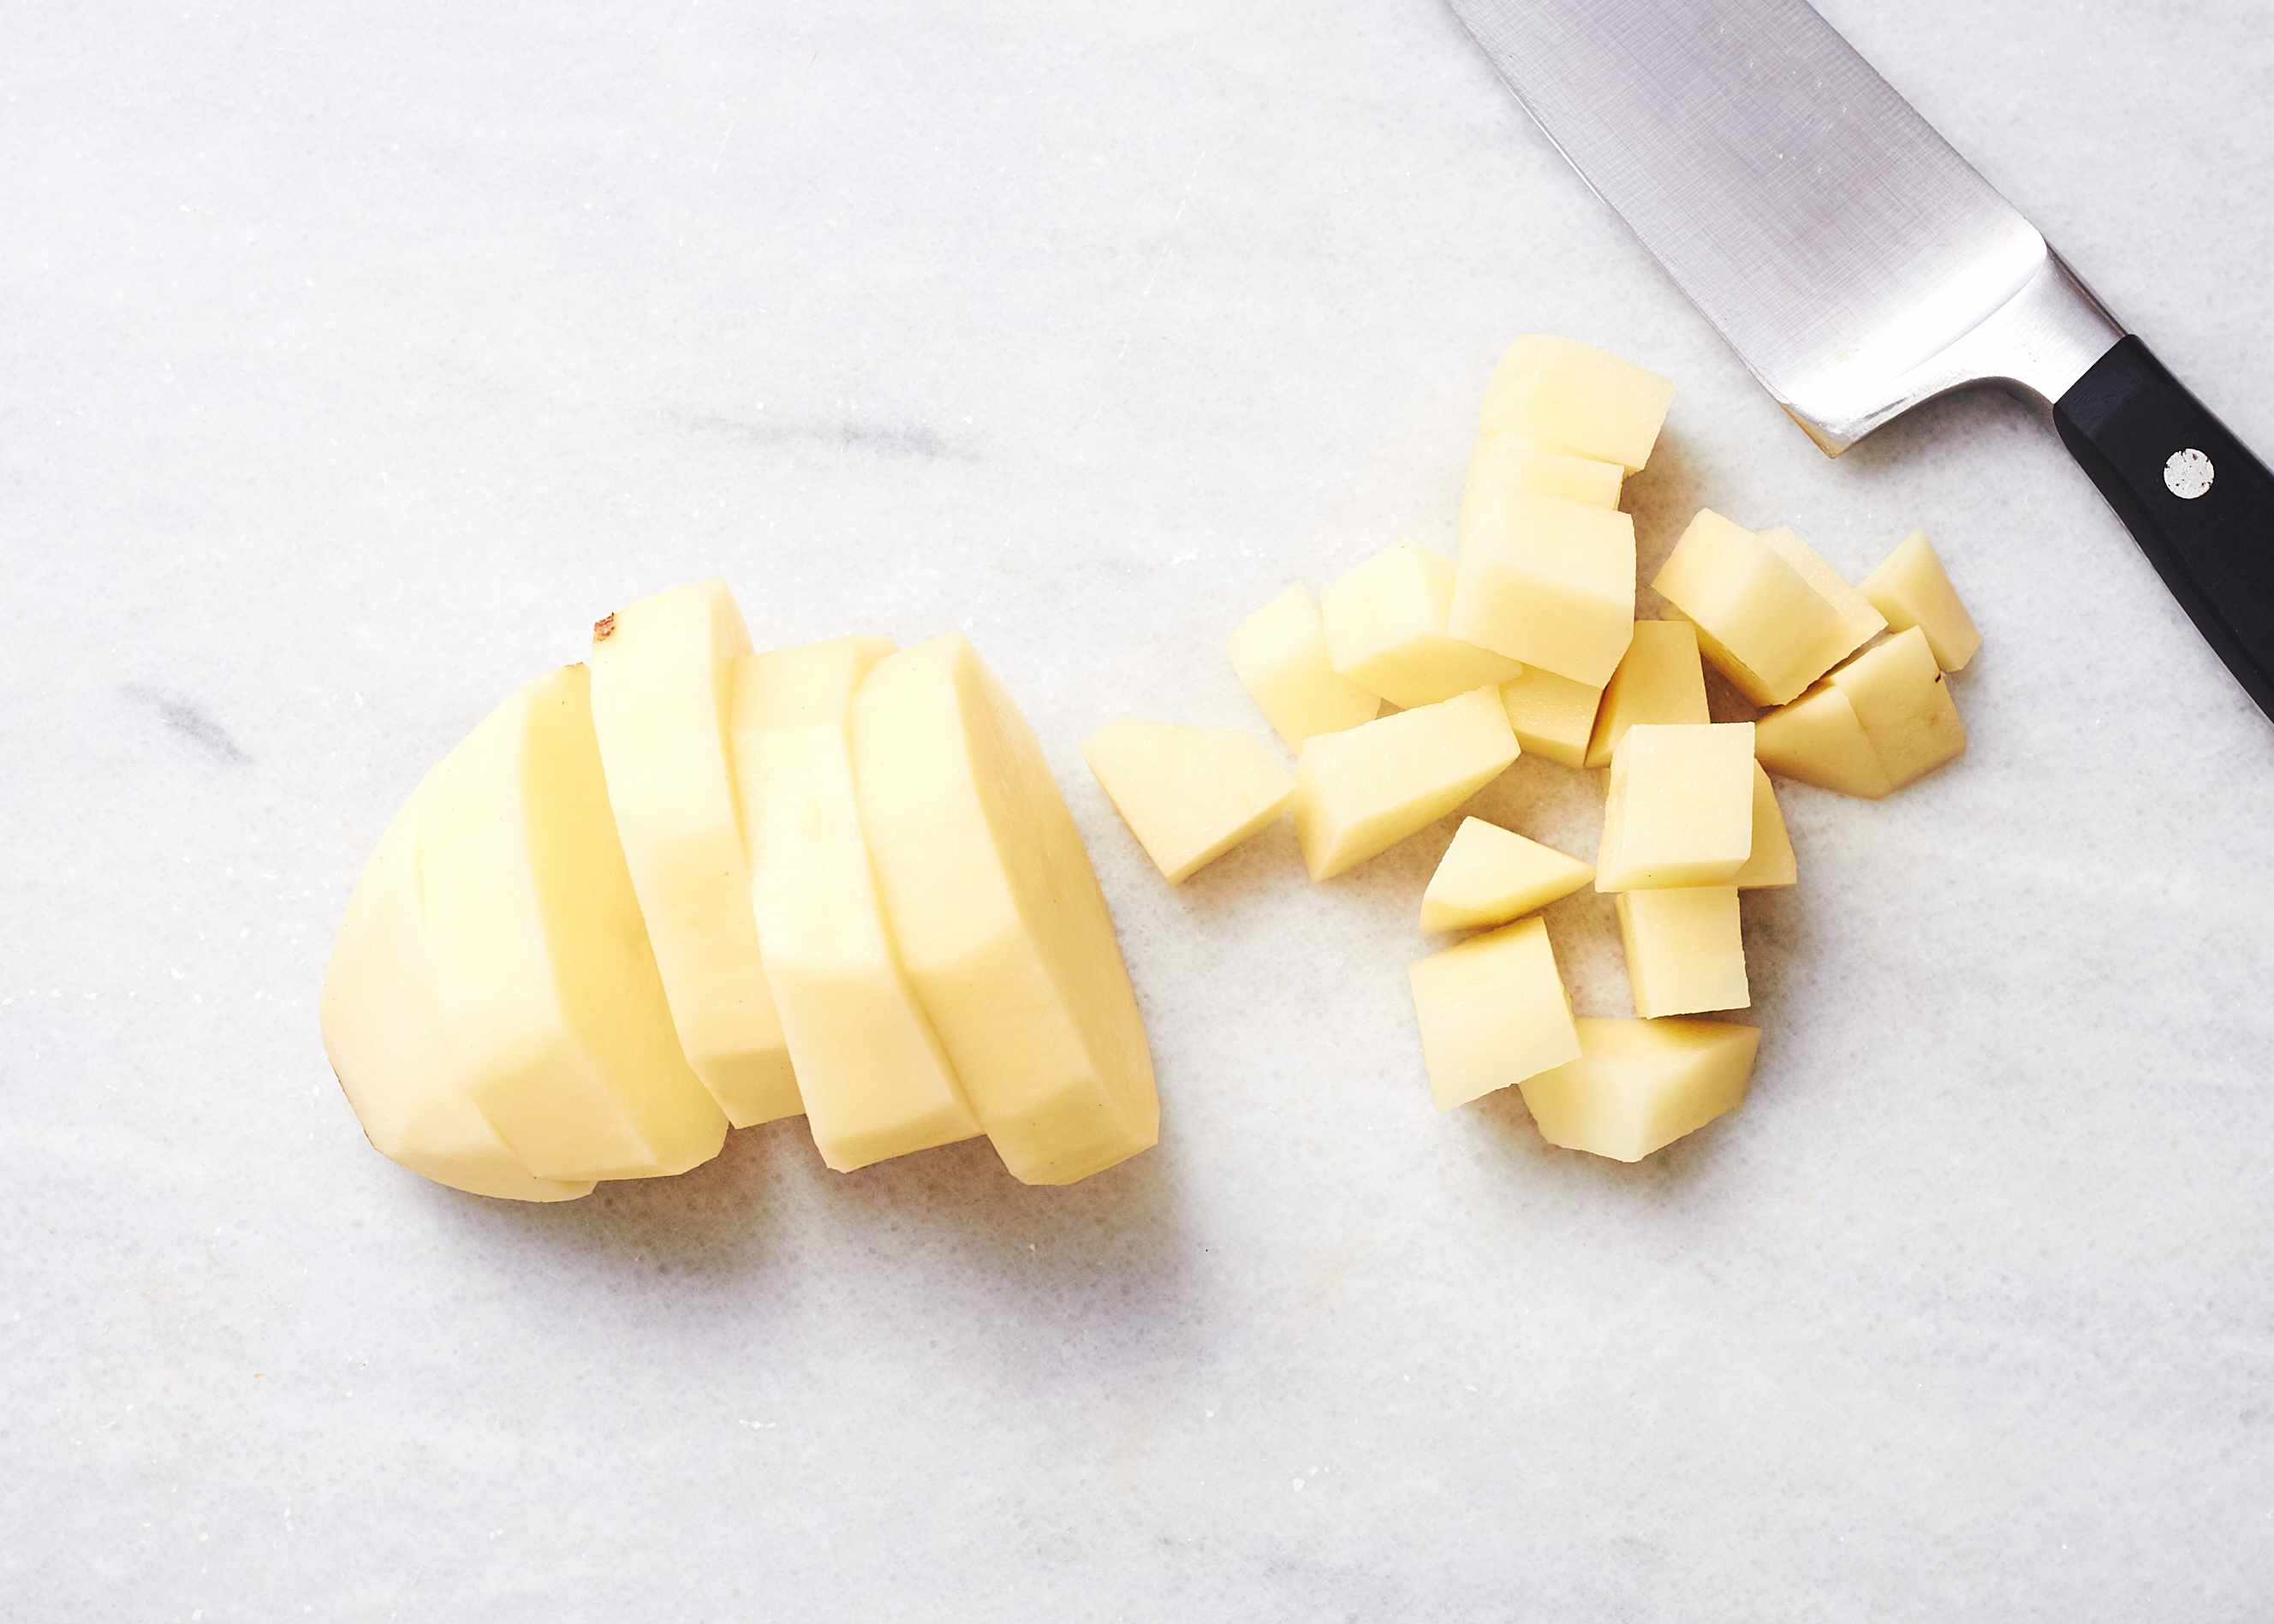 Peel the potato and cut it into pieces